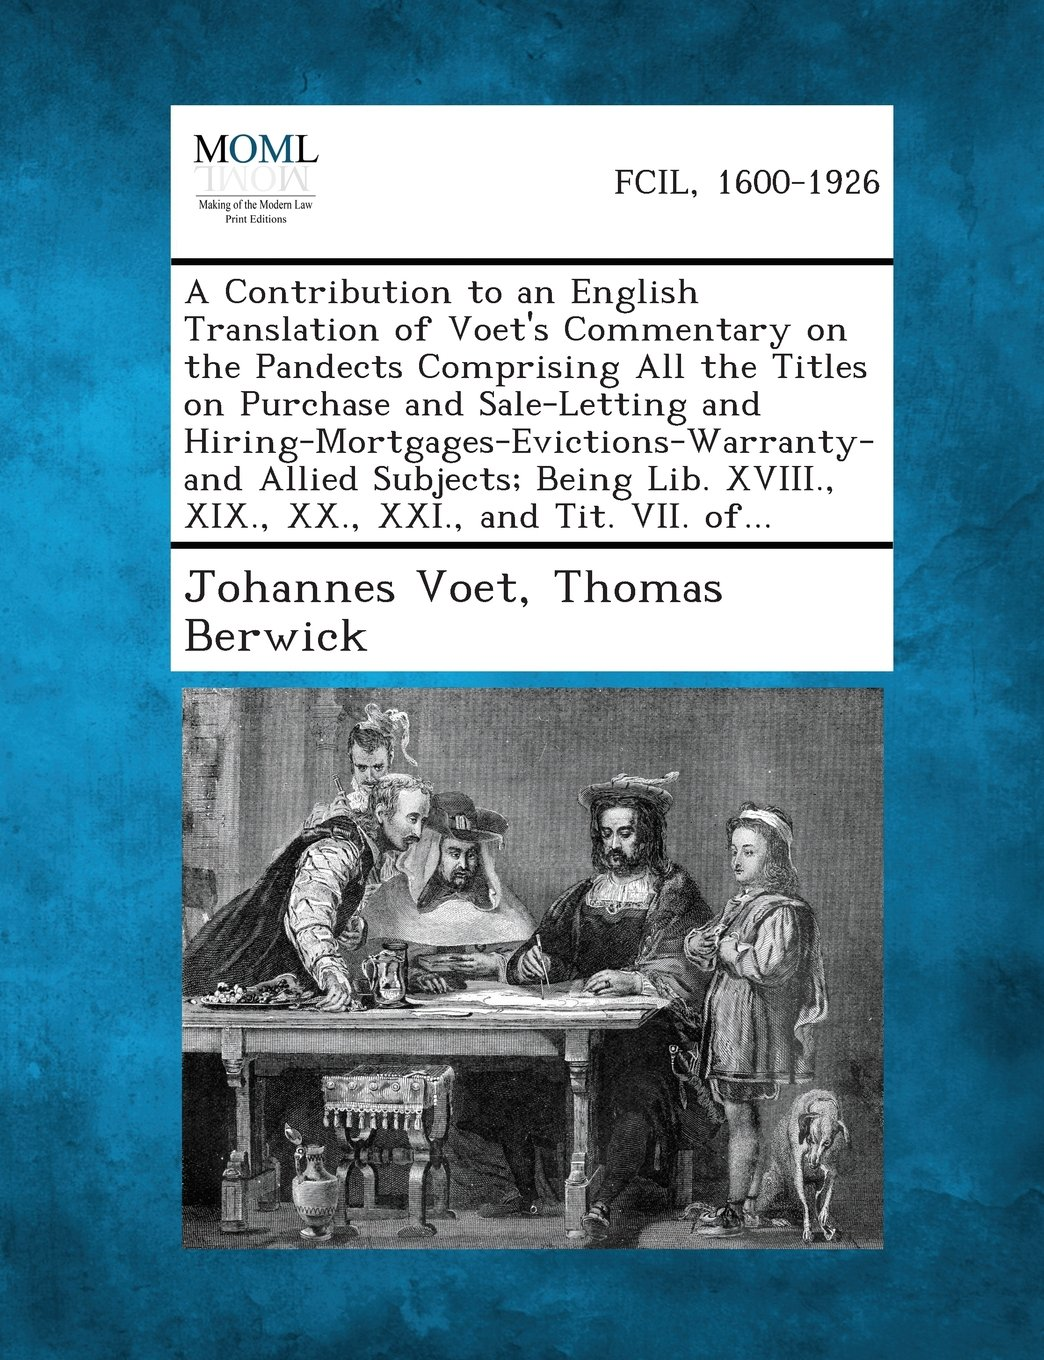 A   Contribution to an English Translation of Voet's Commentary on the Pandects Comprising All the Titles on Purchase and Sale-Letting and Hiring-Mort pdf epub